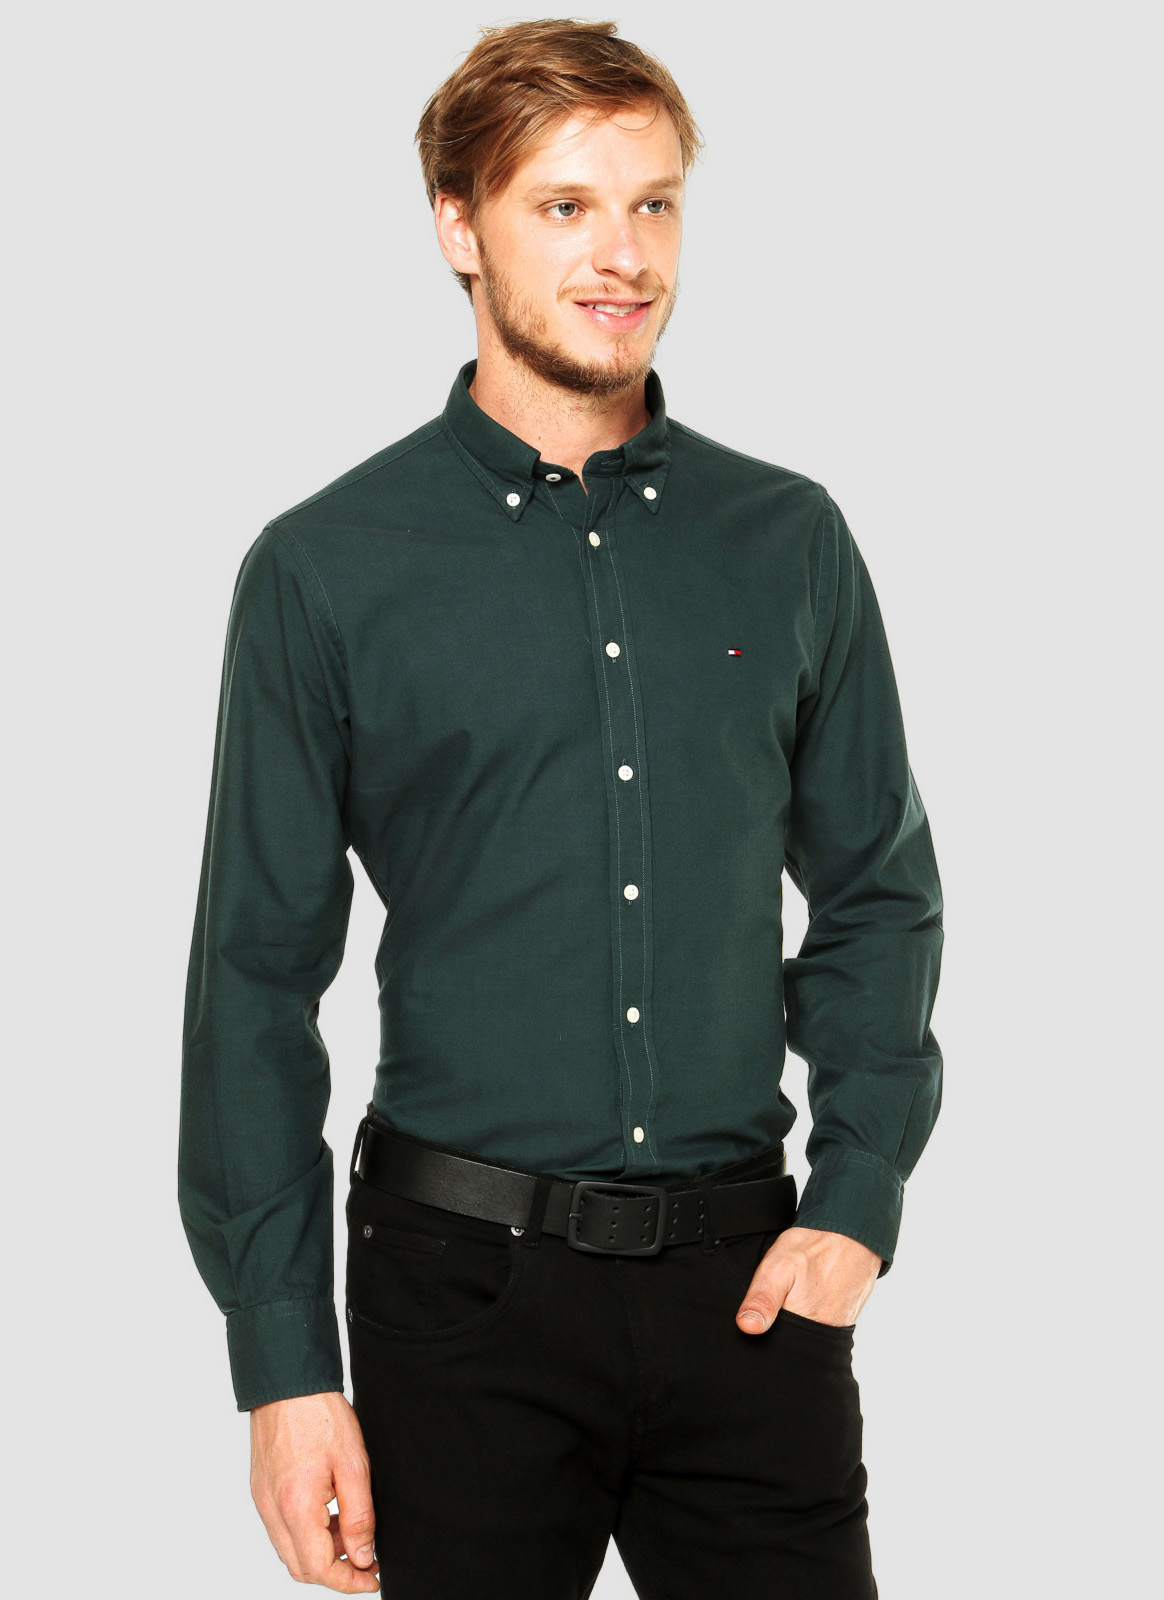 Camisa Tommy Hilfiger Masculina Regular Fit Cotton Oxford Verde Musgo